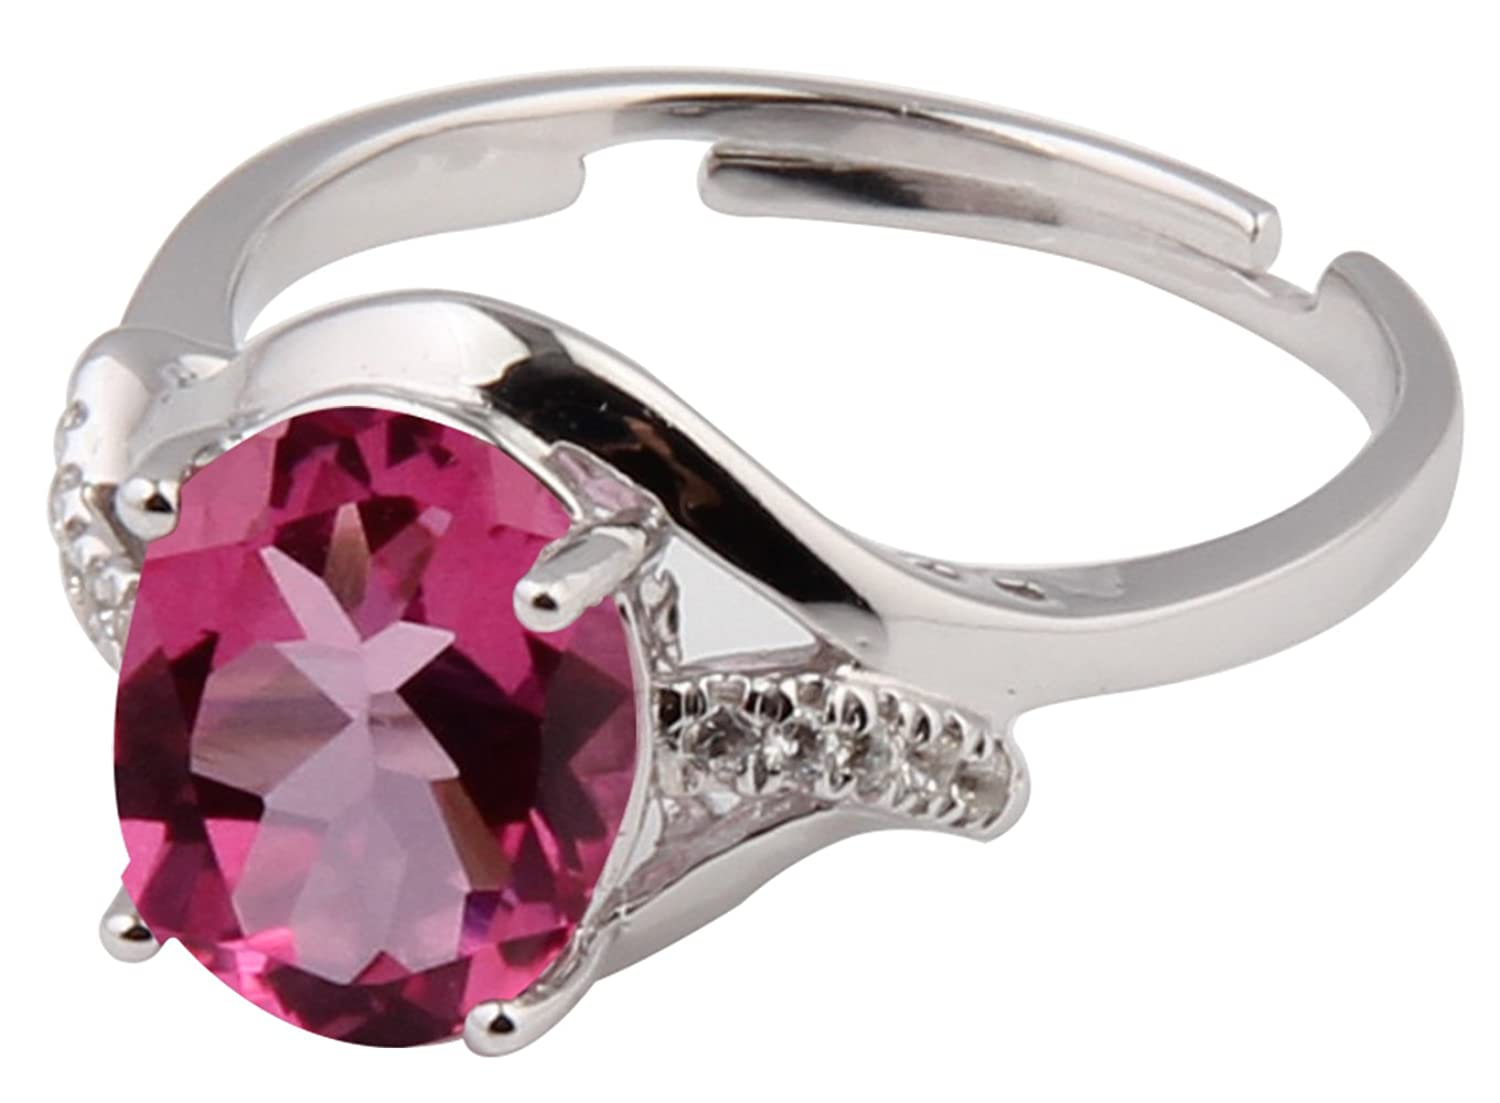 ♥Mother's Day Gift♥Sterling Silver and Natural Pink Topaz Gemstone Ring Gifts for Women for Her